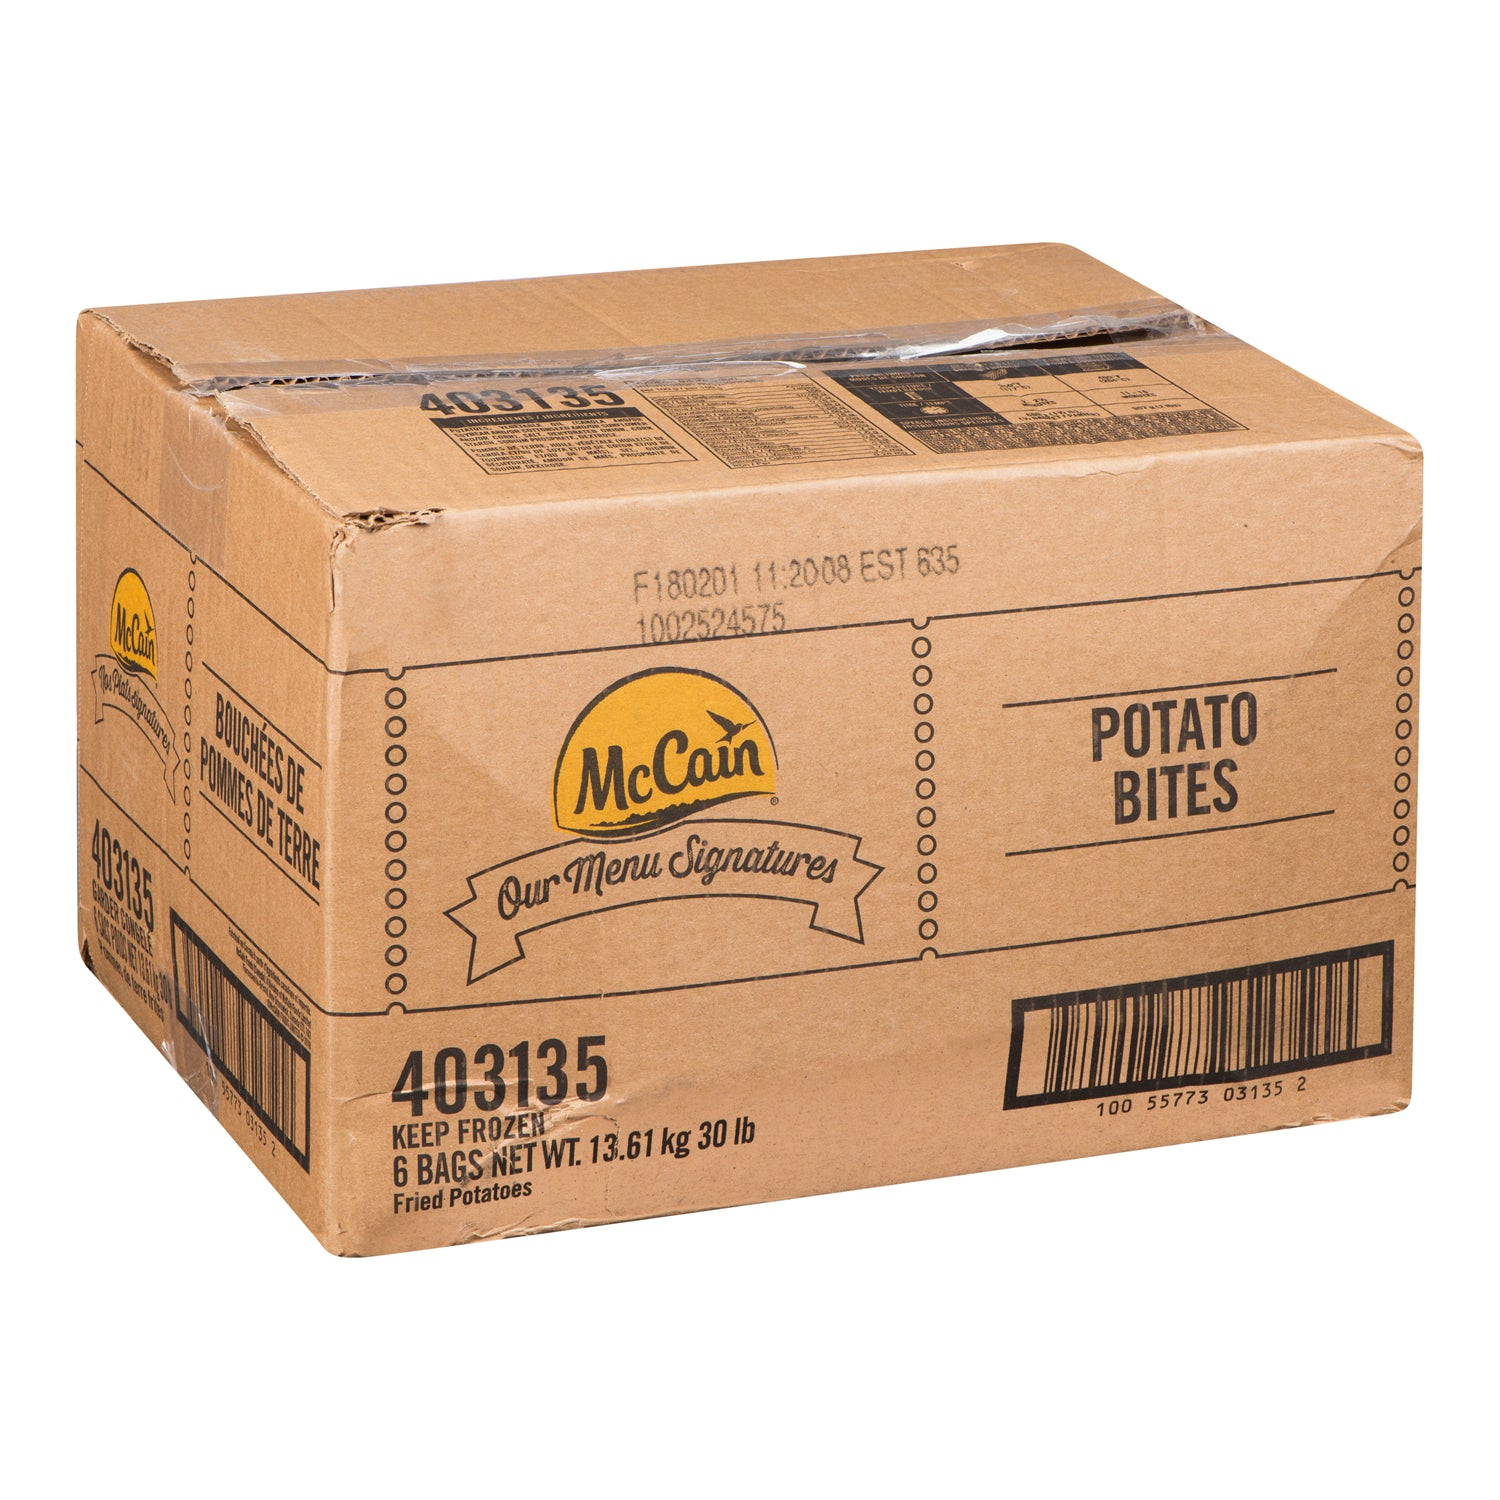 McCain Frozen Potato Bites 5 lb - 6 Pack [$2.10/lb]